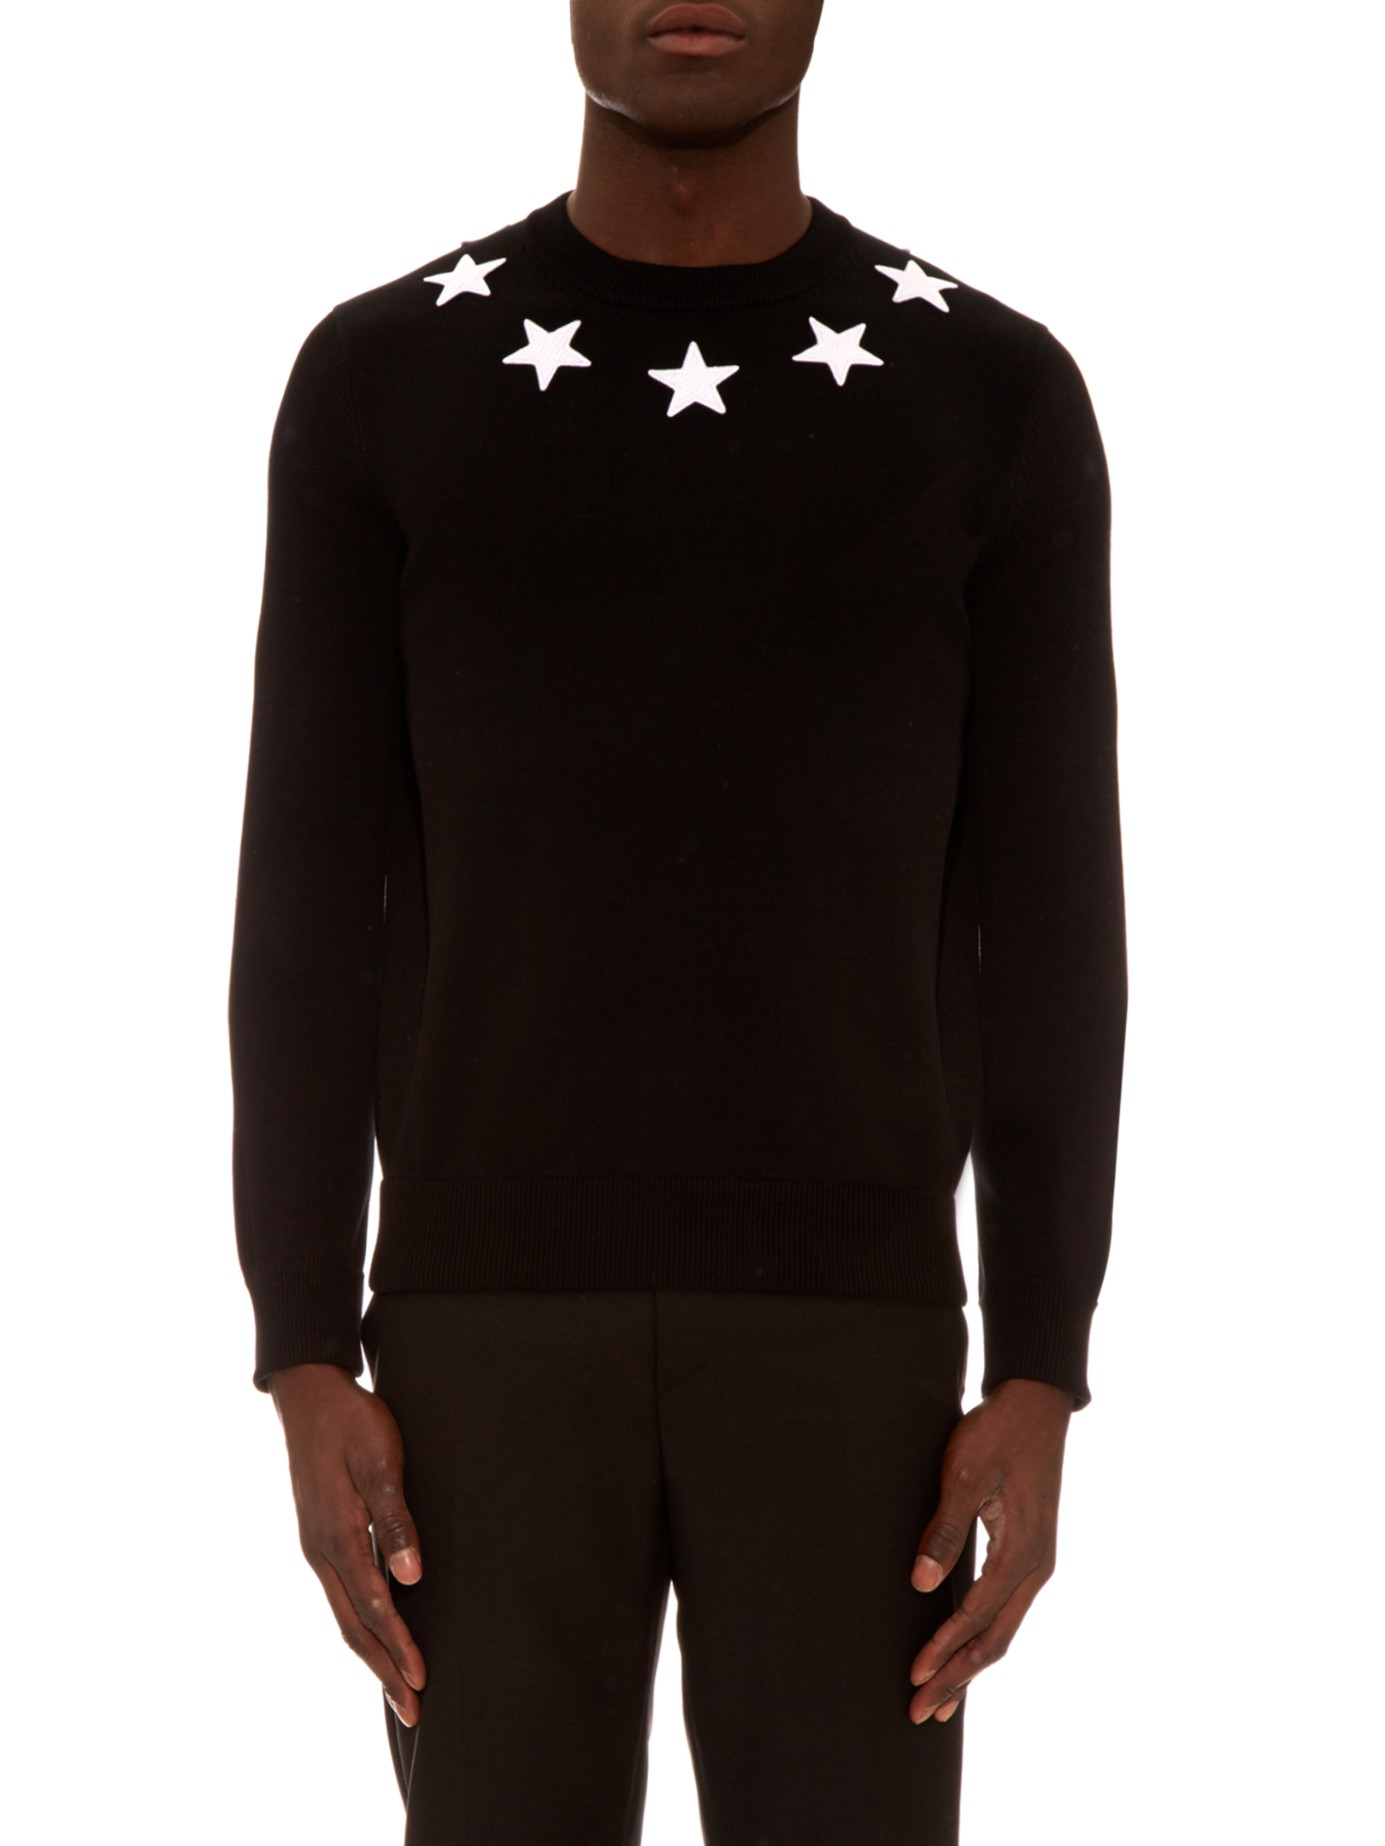 Lyst - Givenchy Cuban-fit Star Appliqué Sweater in Black for Men 438cdbcc6